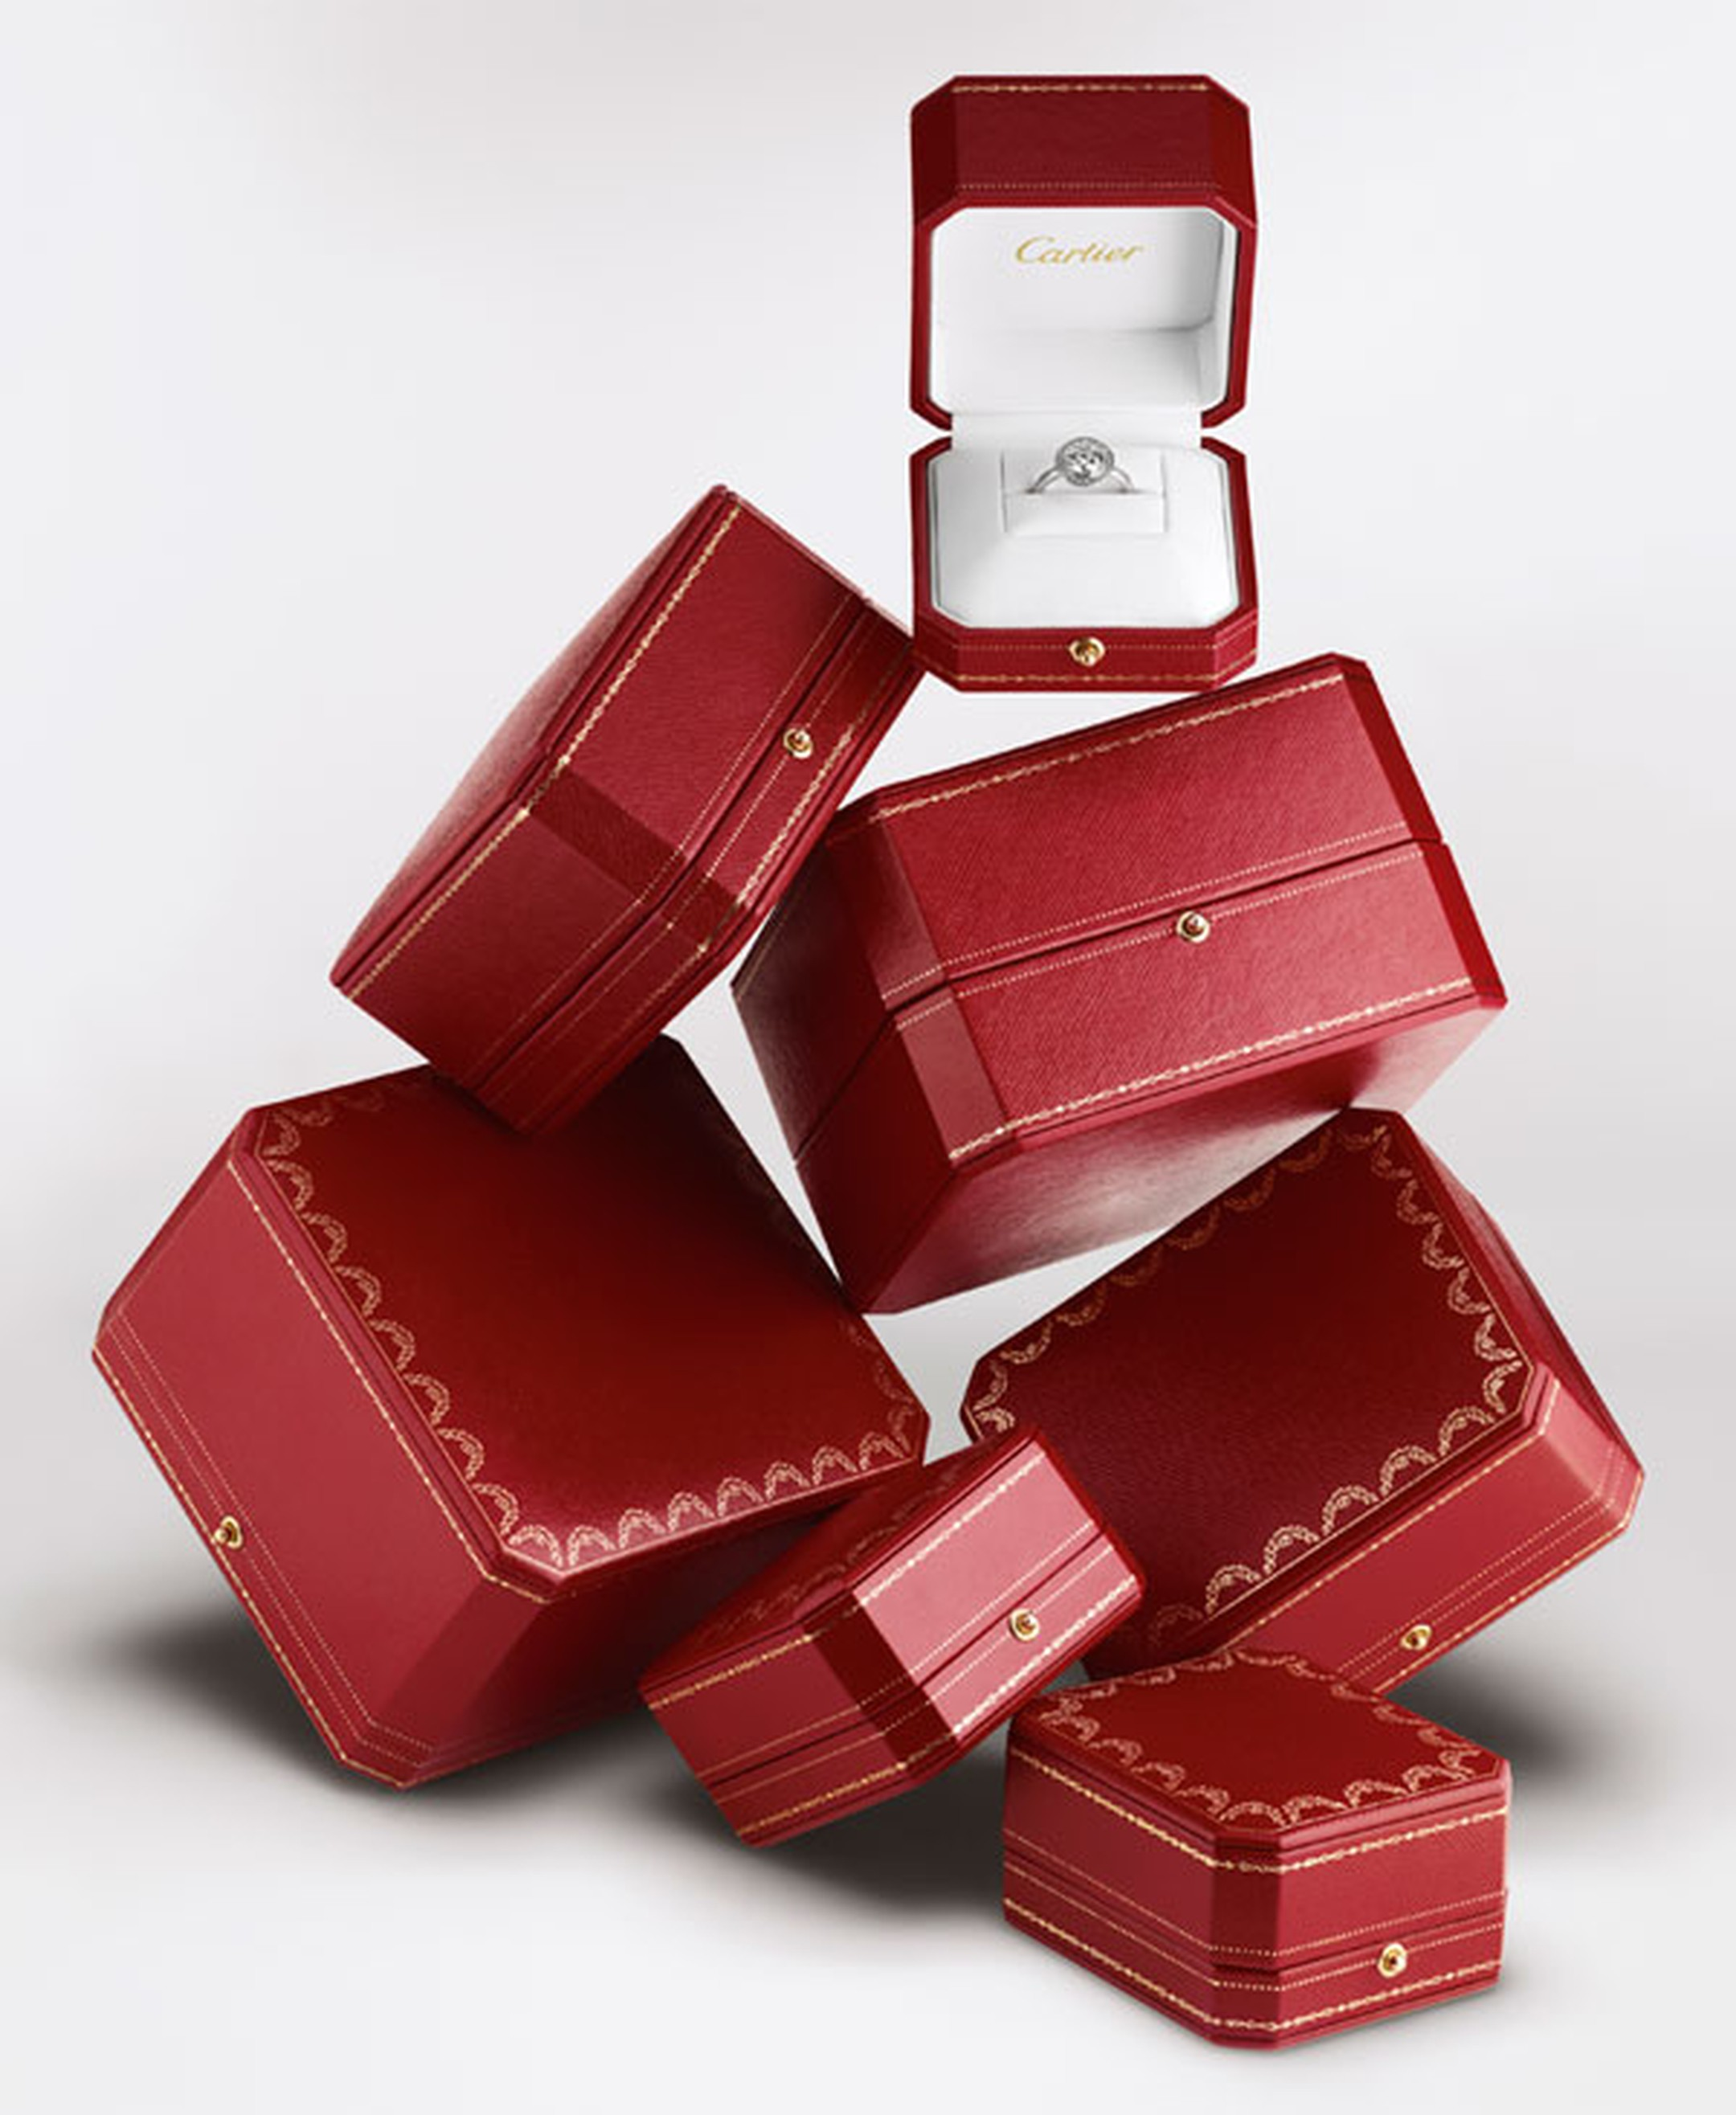 Cartier-boxes-and-Cartier-d'Amour-solitaire